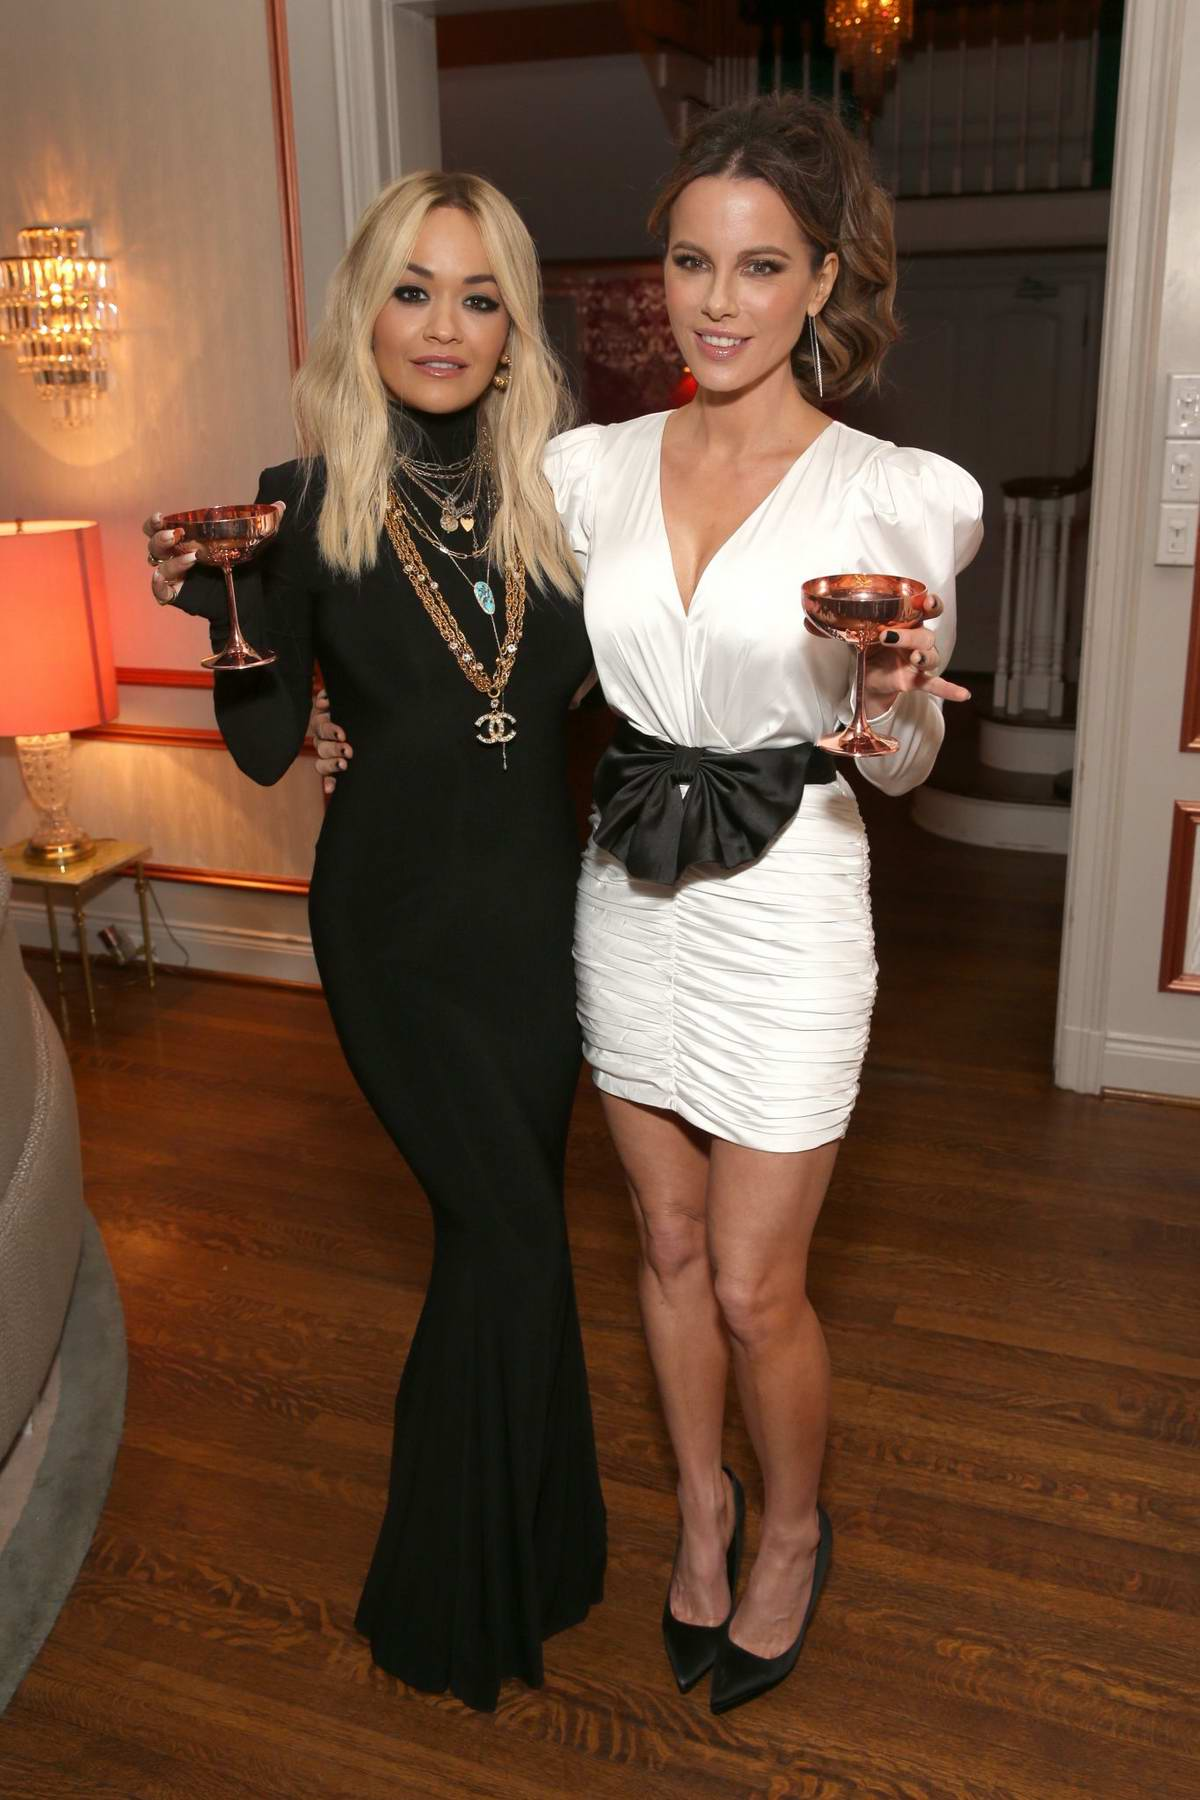 Rita Ora and Kate Beckinsale attend Tings Magazine Private Dinner in Los Angeles, California